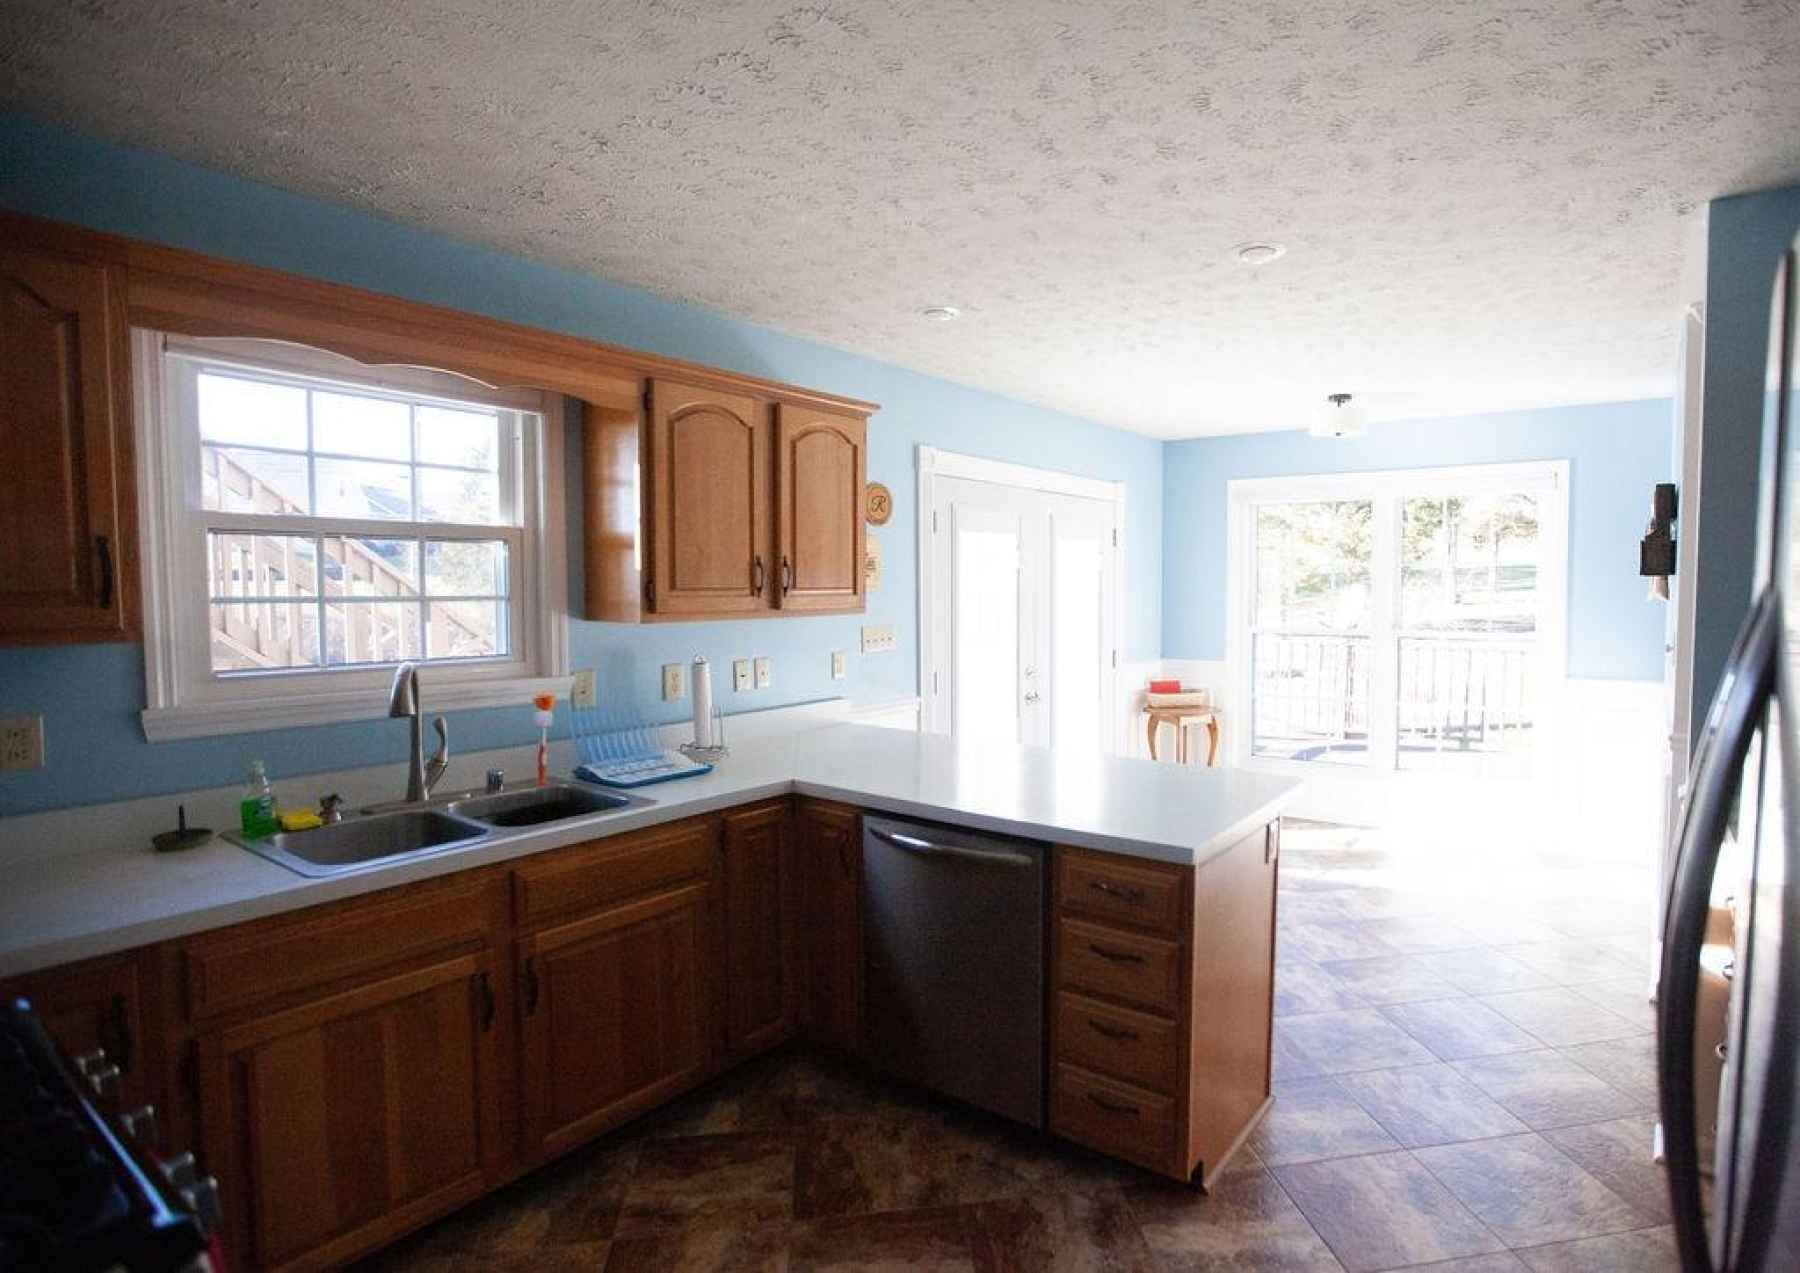 There's plenty of natural light in this spacious kitchen with new windows with lifetime warranties and a French door that leads out onto the rear deck. The stainless steel dishwasher was replaced in 2016.